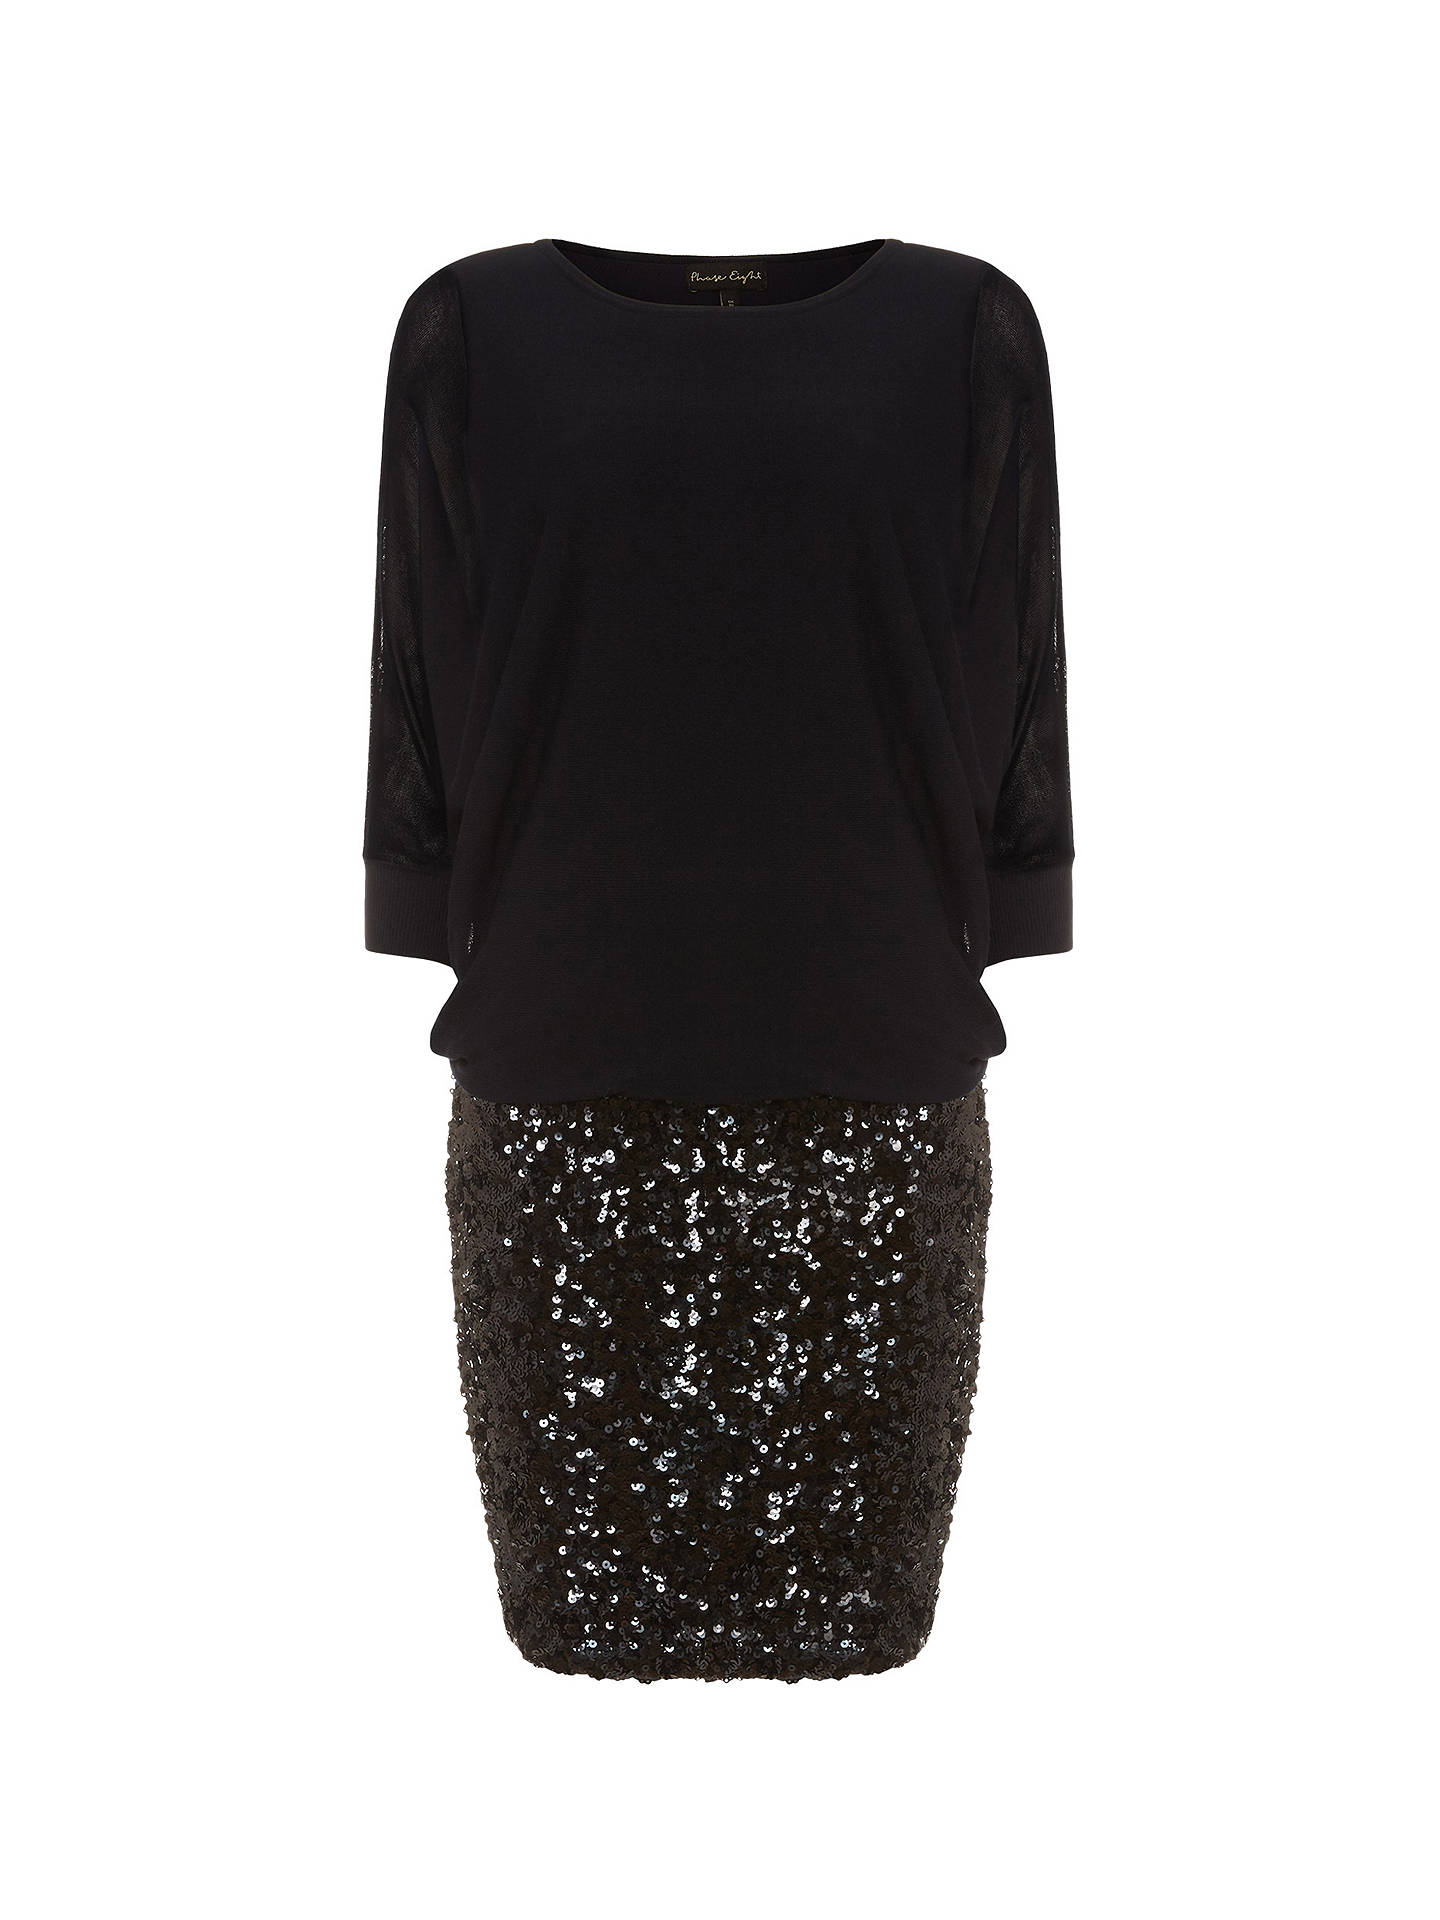 9f821a9c ... Buy Phase Eight Geonna Sequin Skirt Dress, Midnight, 8 Online at  johnlewis.com ...